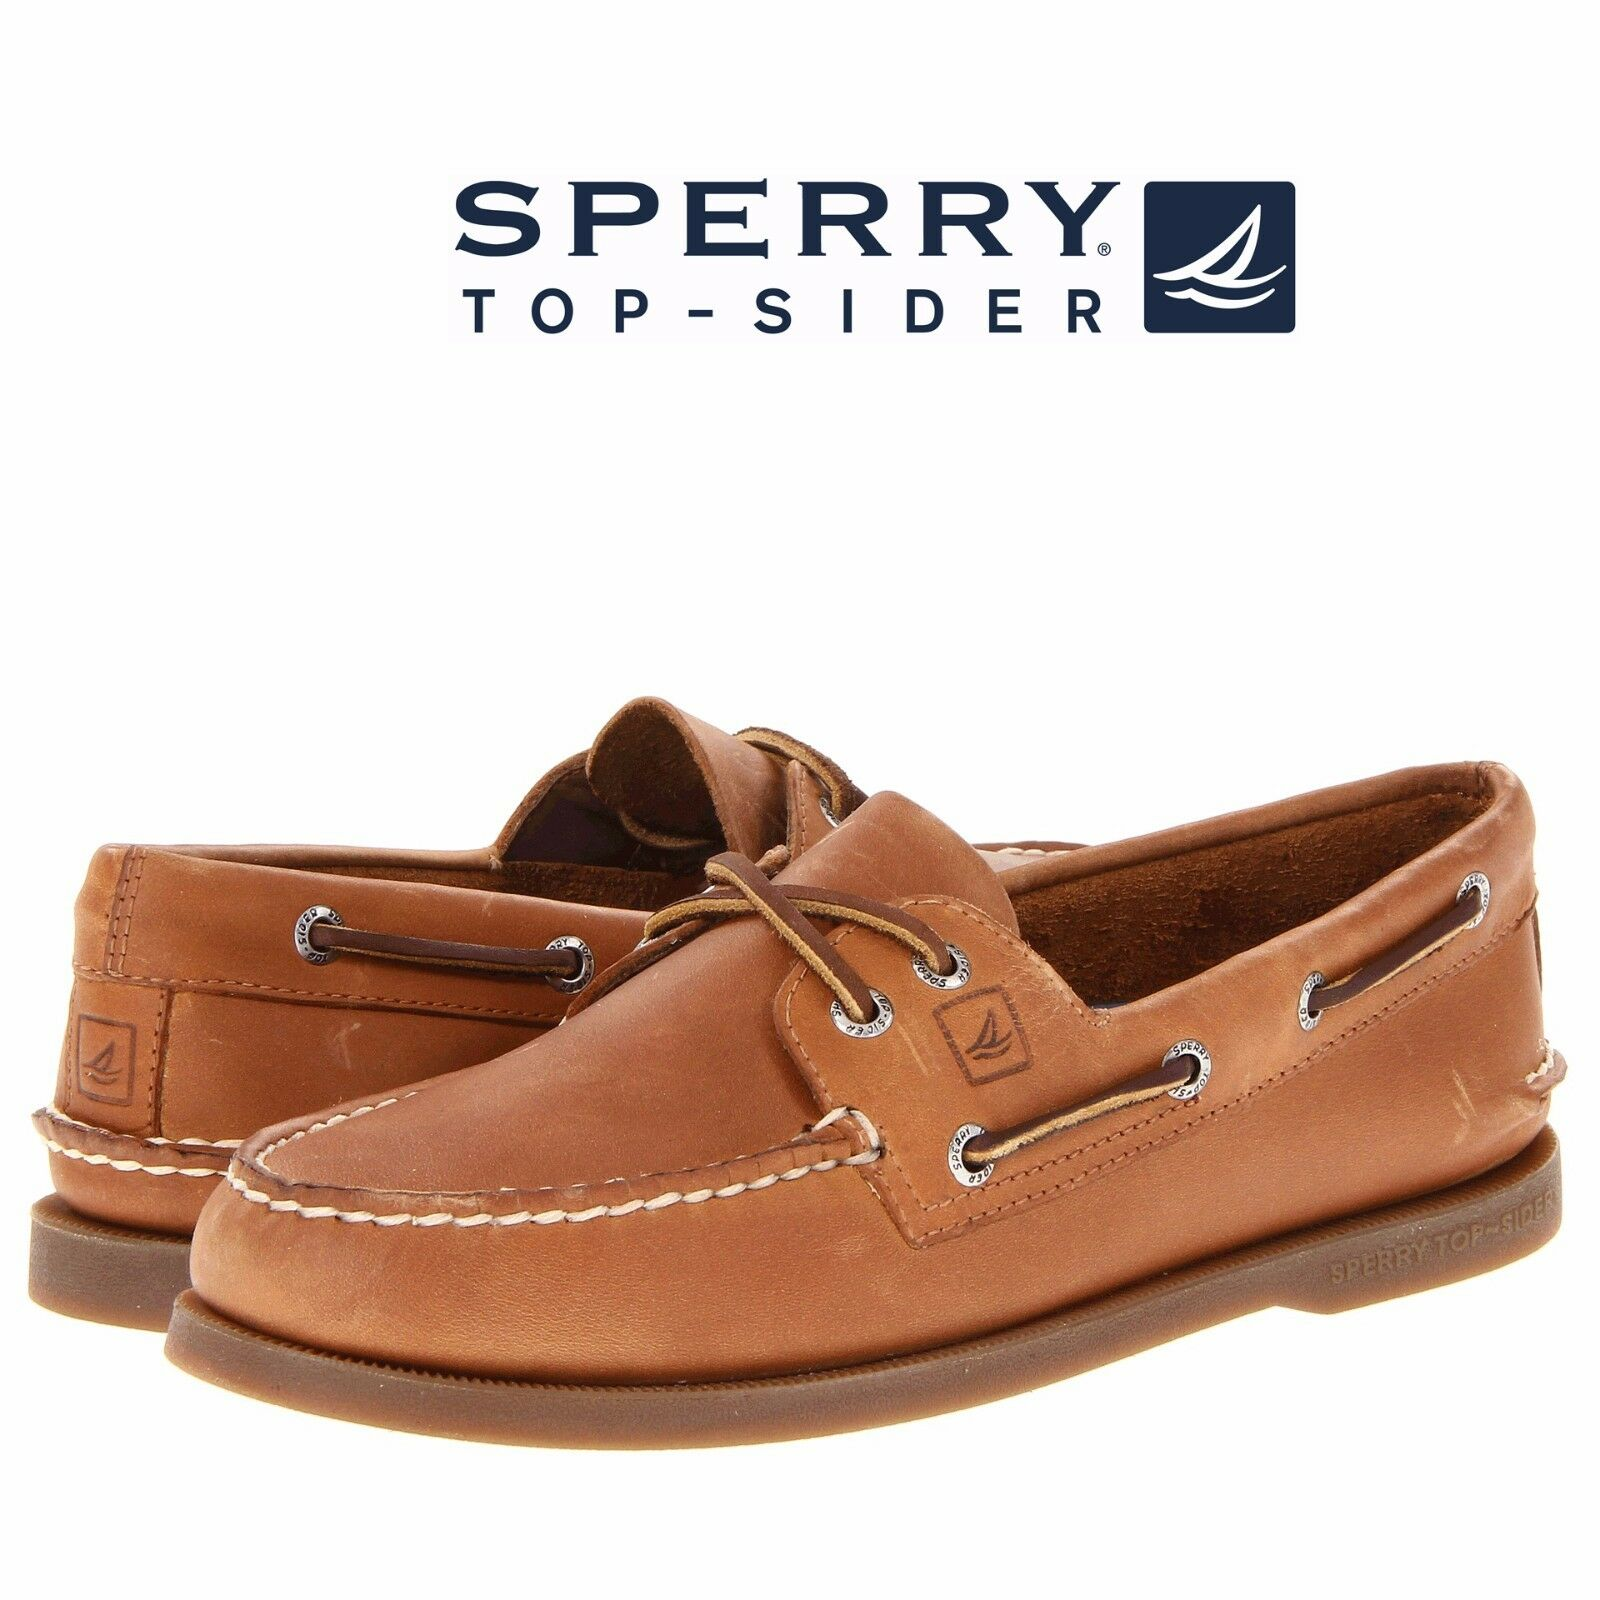 08378379d74 Men's Sperry Top-Sider Original A/O 2-Eye Boat Shoes Sahara Leather All  Size NIB